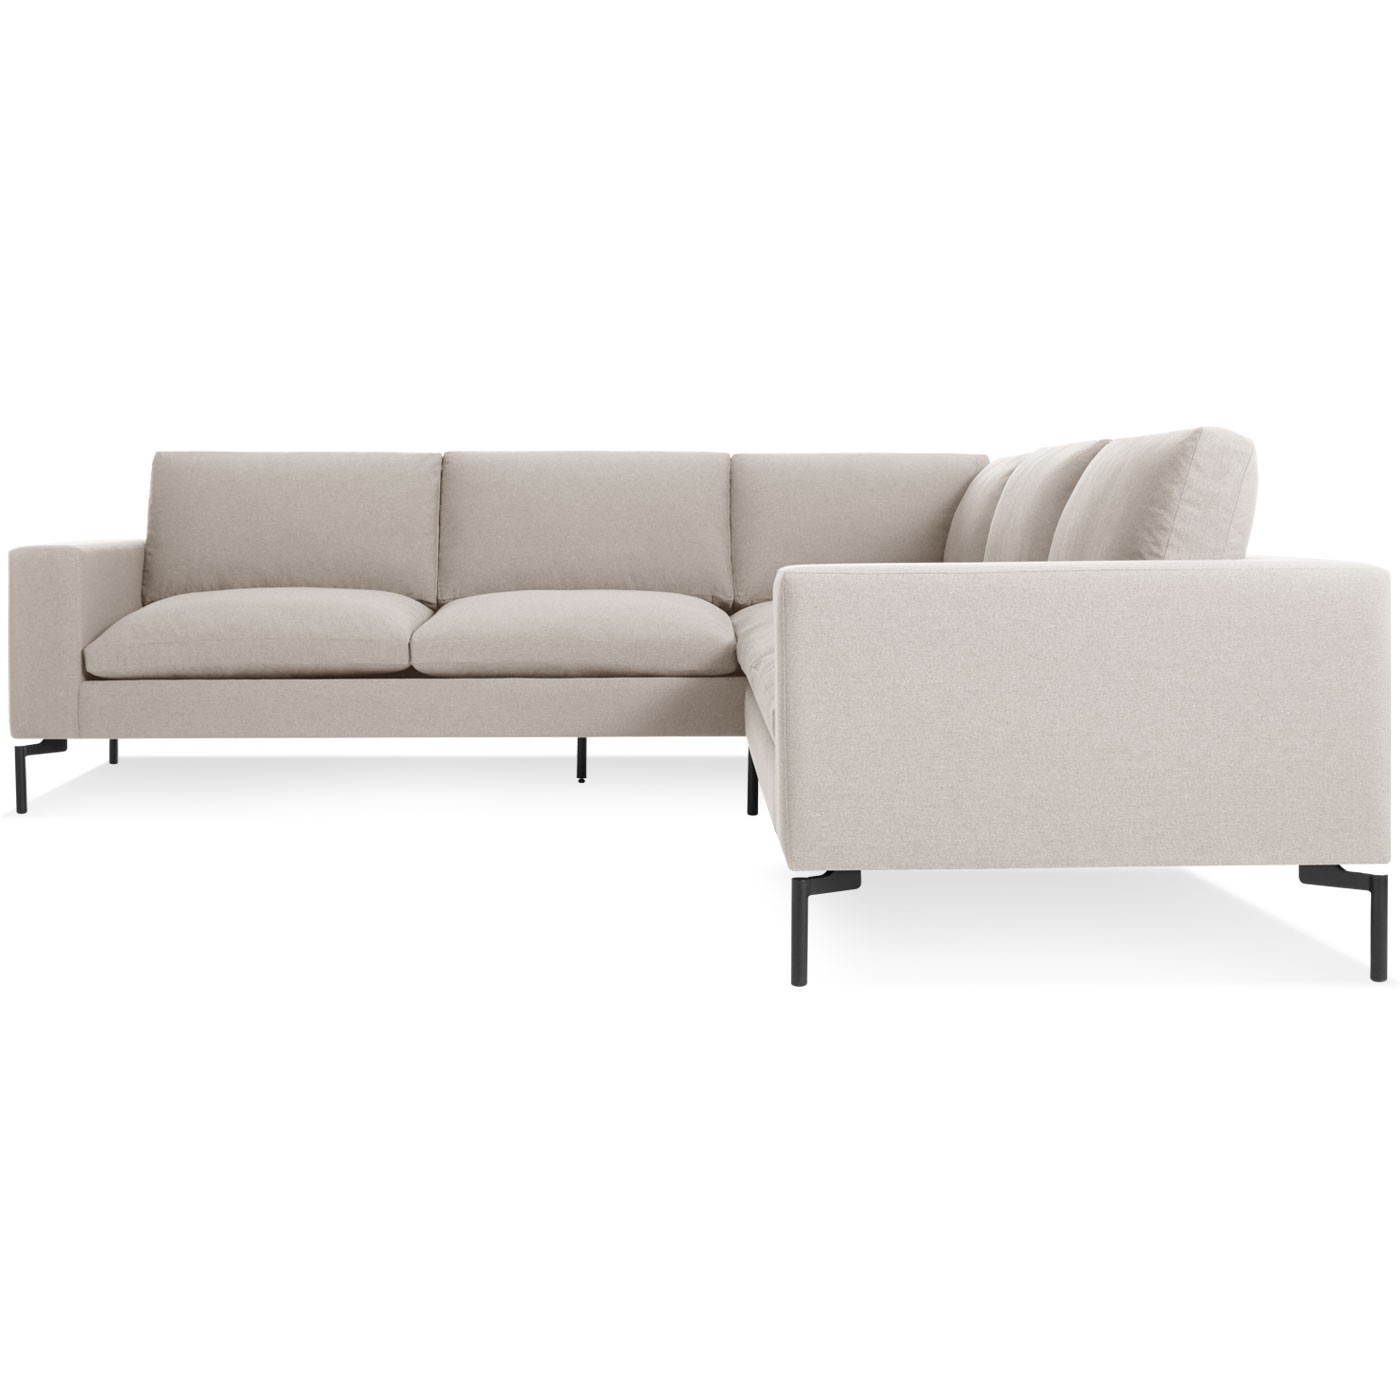 New Standard Sectional Sofa Small By Blu Dot Hub Modern Home Giftpost Hub Modern Home Gift